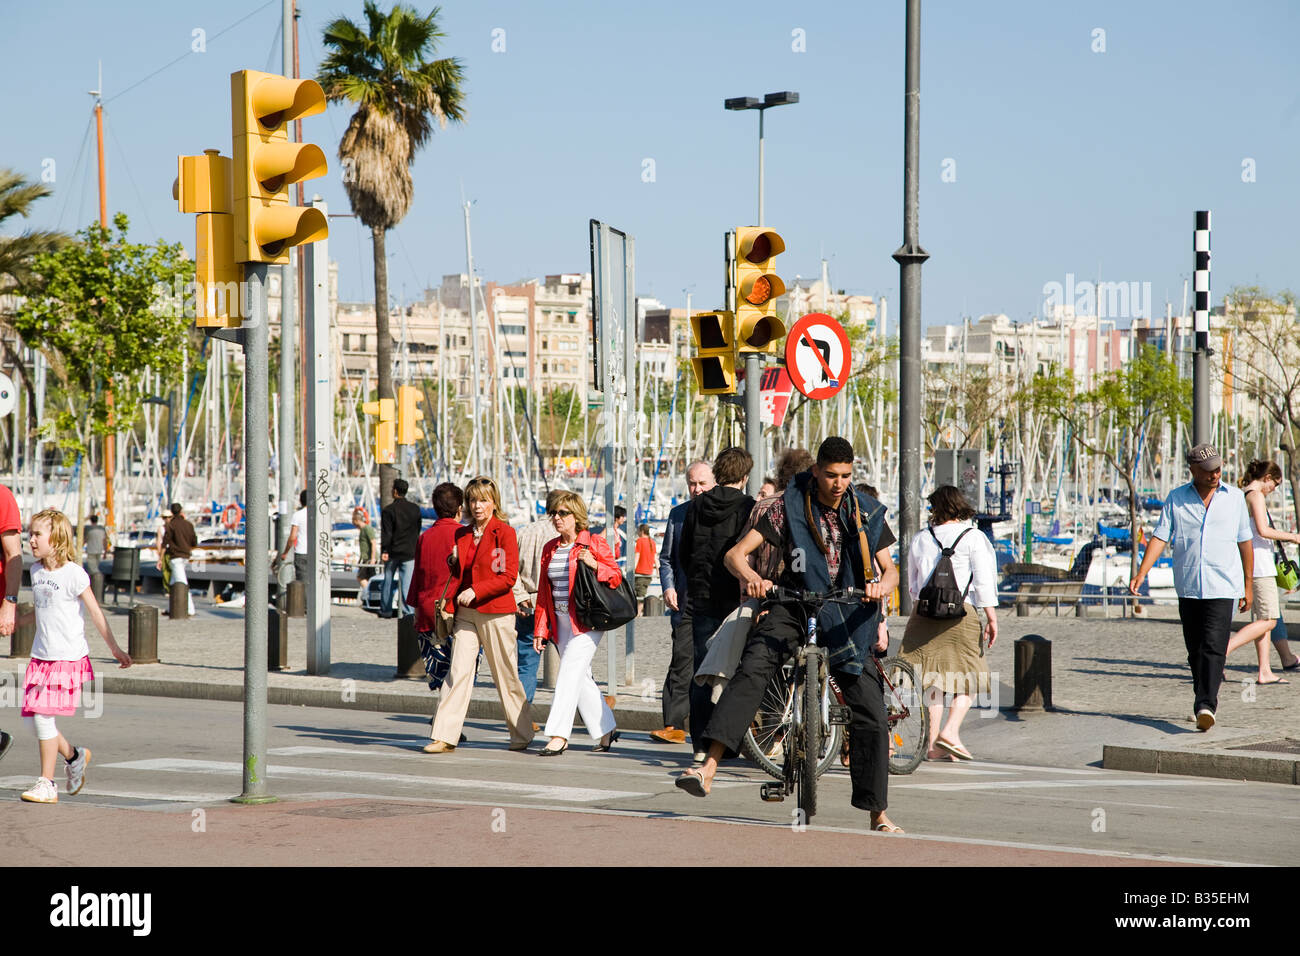 SPAIN Barcelona Pedestrians and male bicyclist in crosswalk near Marina Port Vell - Stock Image